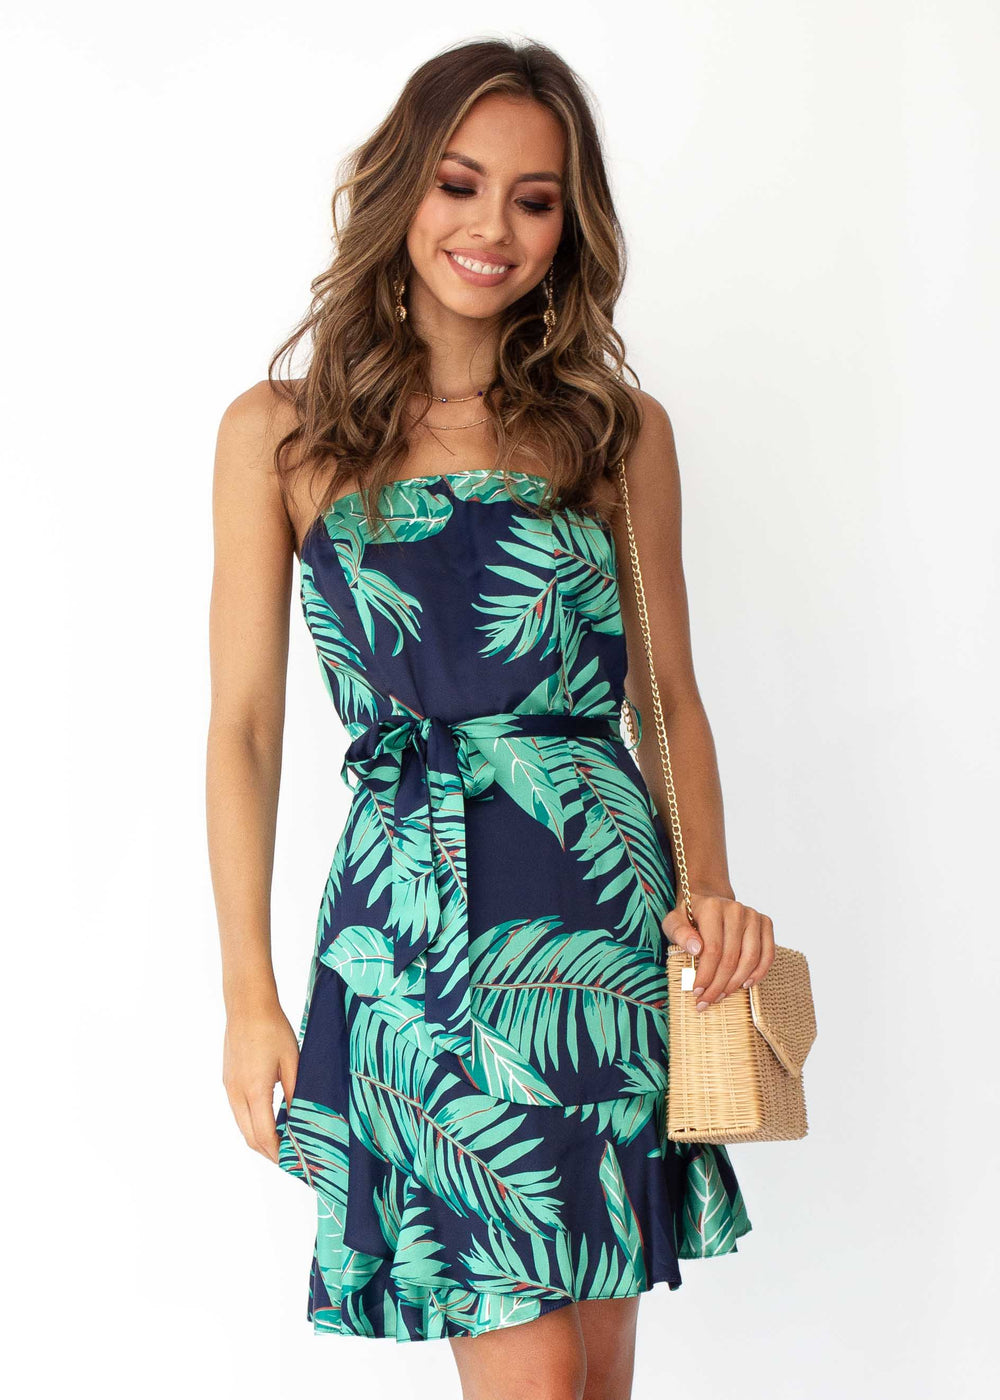 Into It Strapless Dress w/ Tie - Navy Tropics